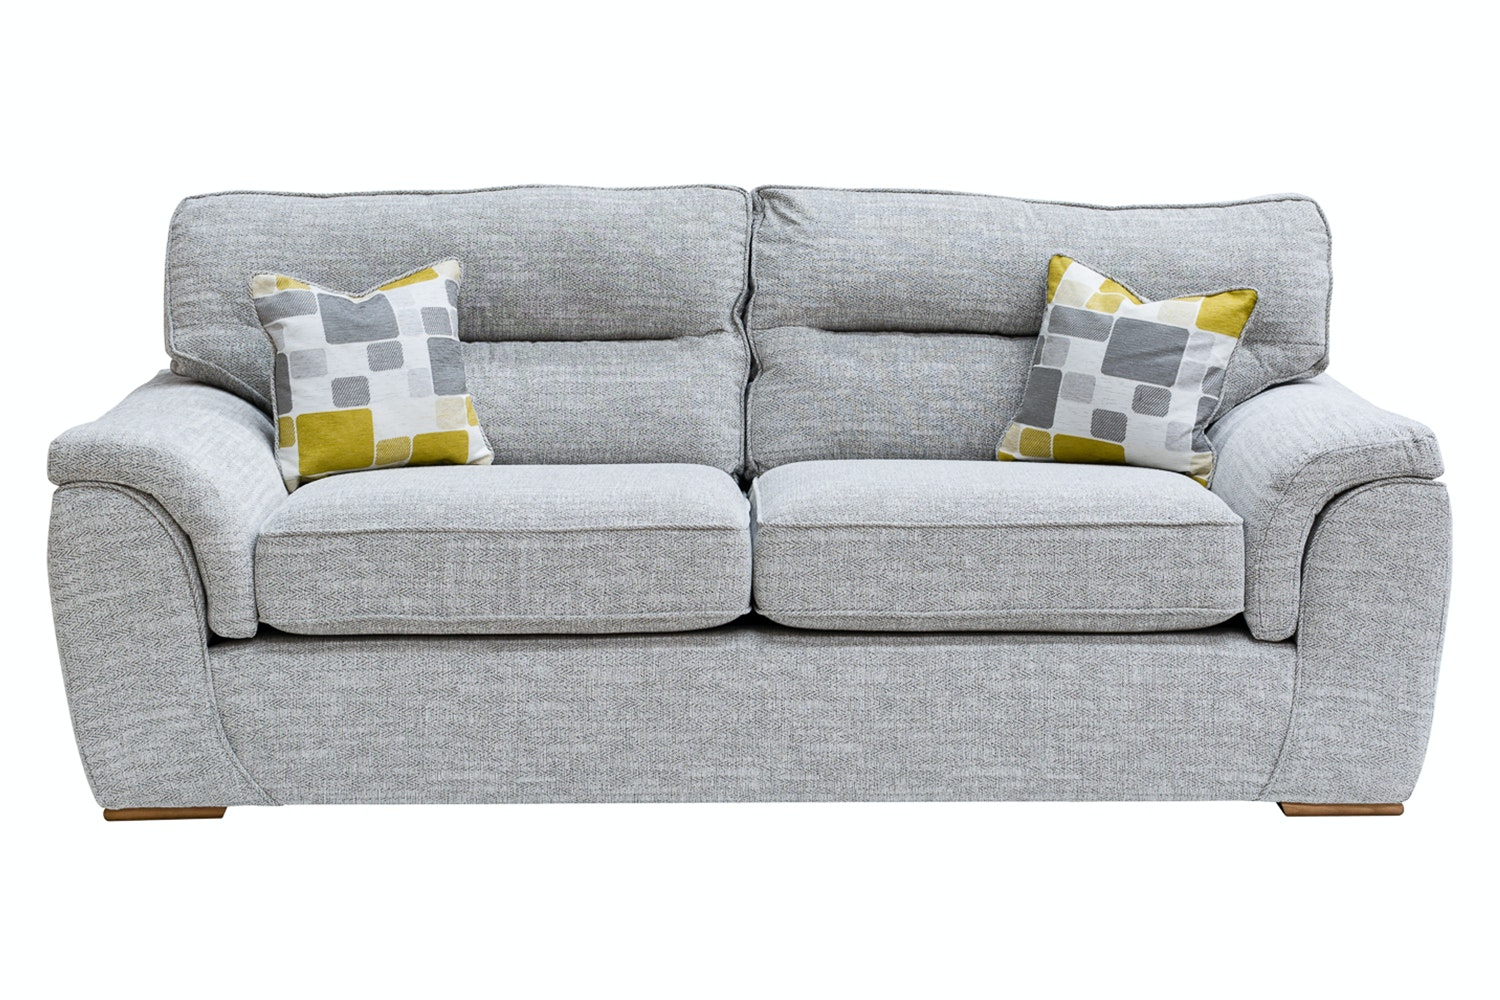 Sadie 3 Seater Sofa | 5 Colour Options